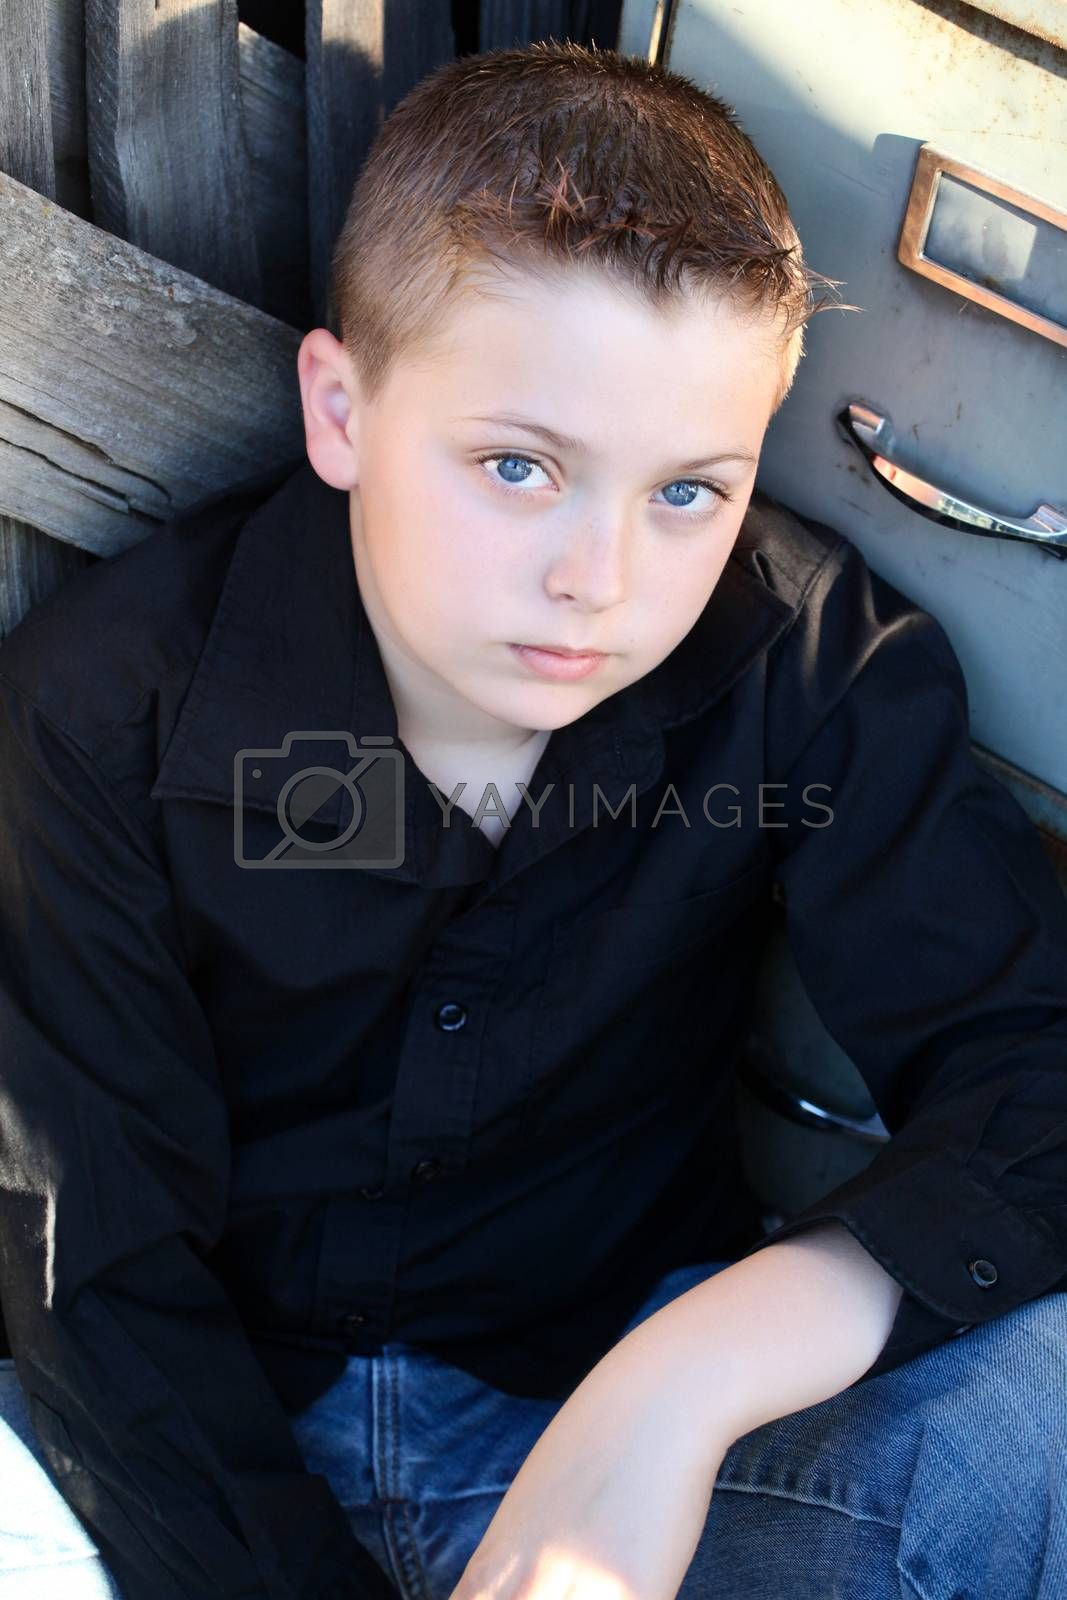 Young boy with deep blue eyes sitting against rustic background